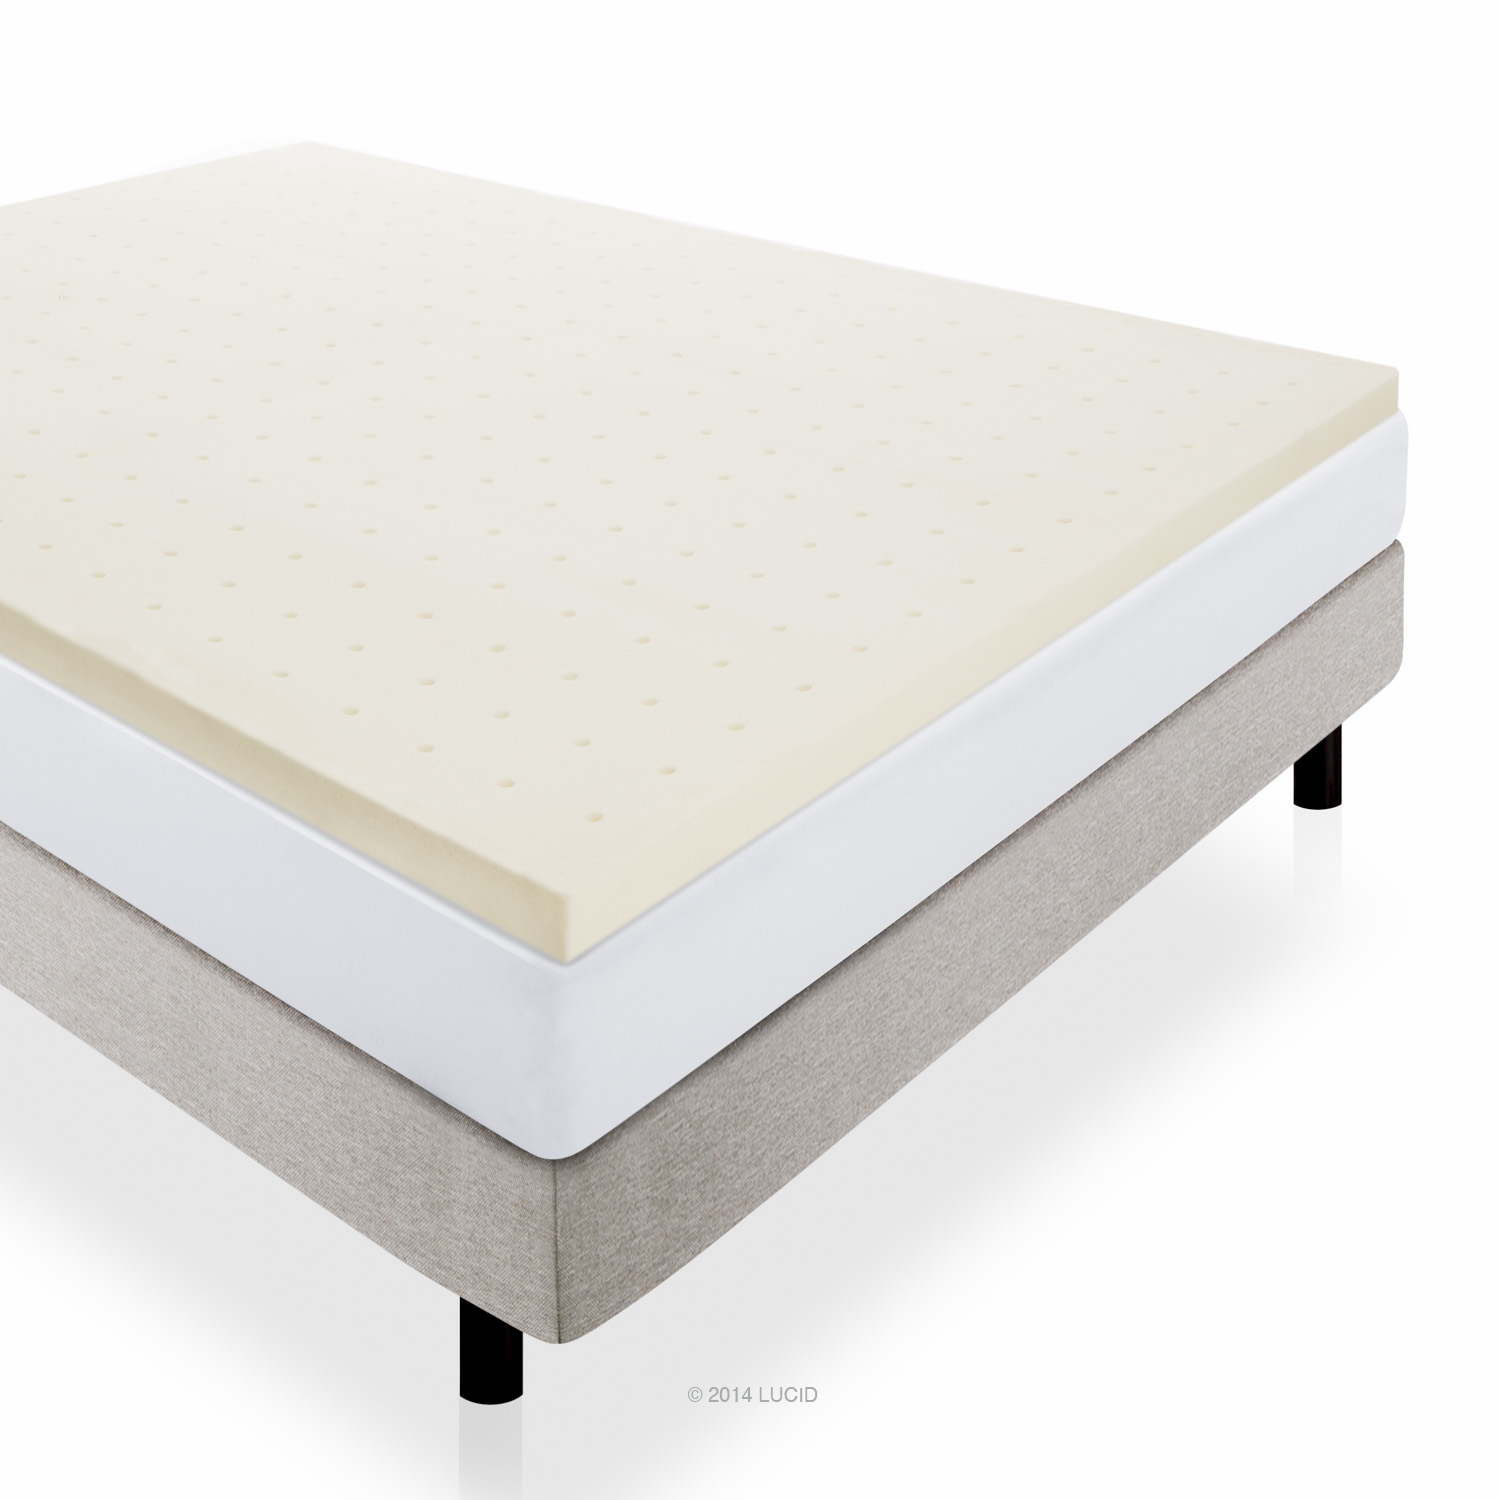 tempurpedic mattress topper queen Lucid 2